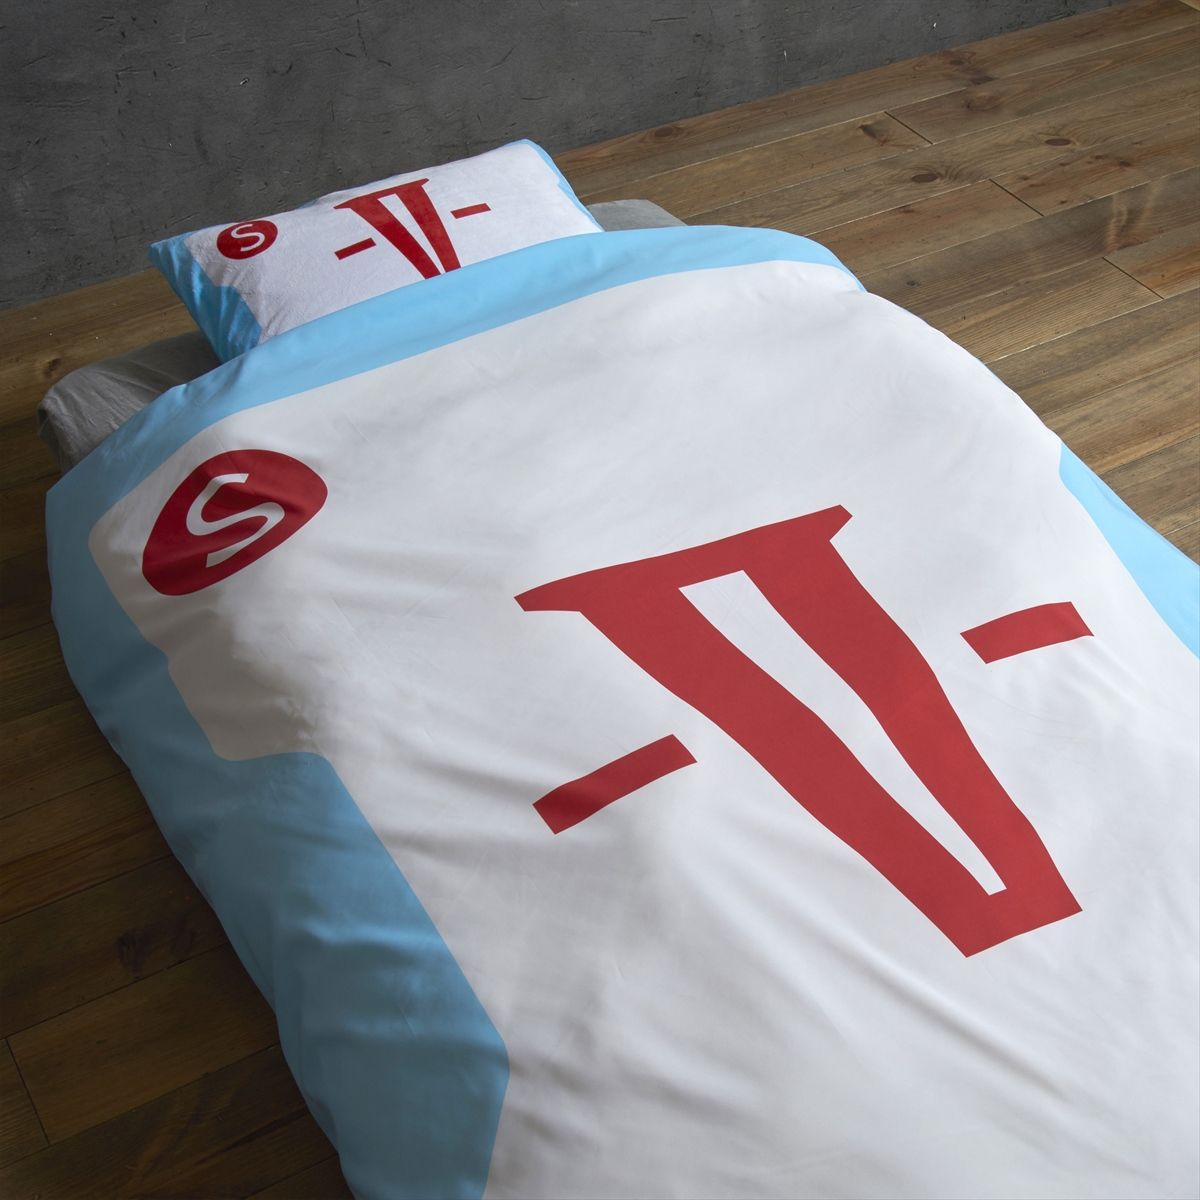 Mobile Suit Gundam Operation V Duvet Cover Set